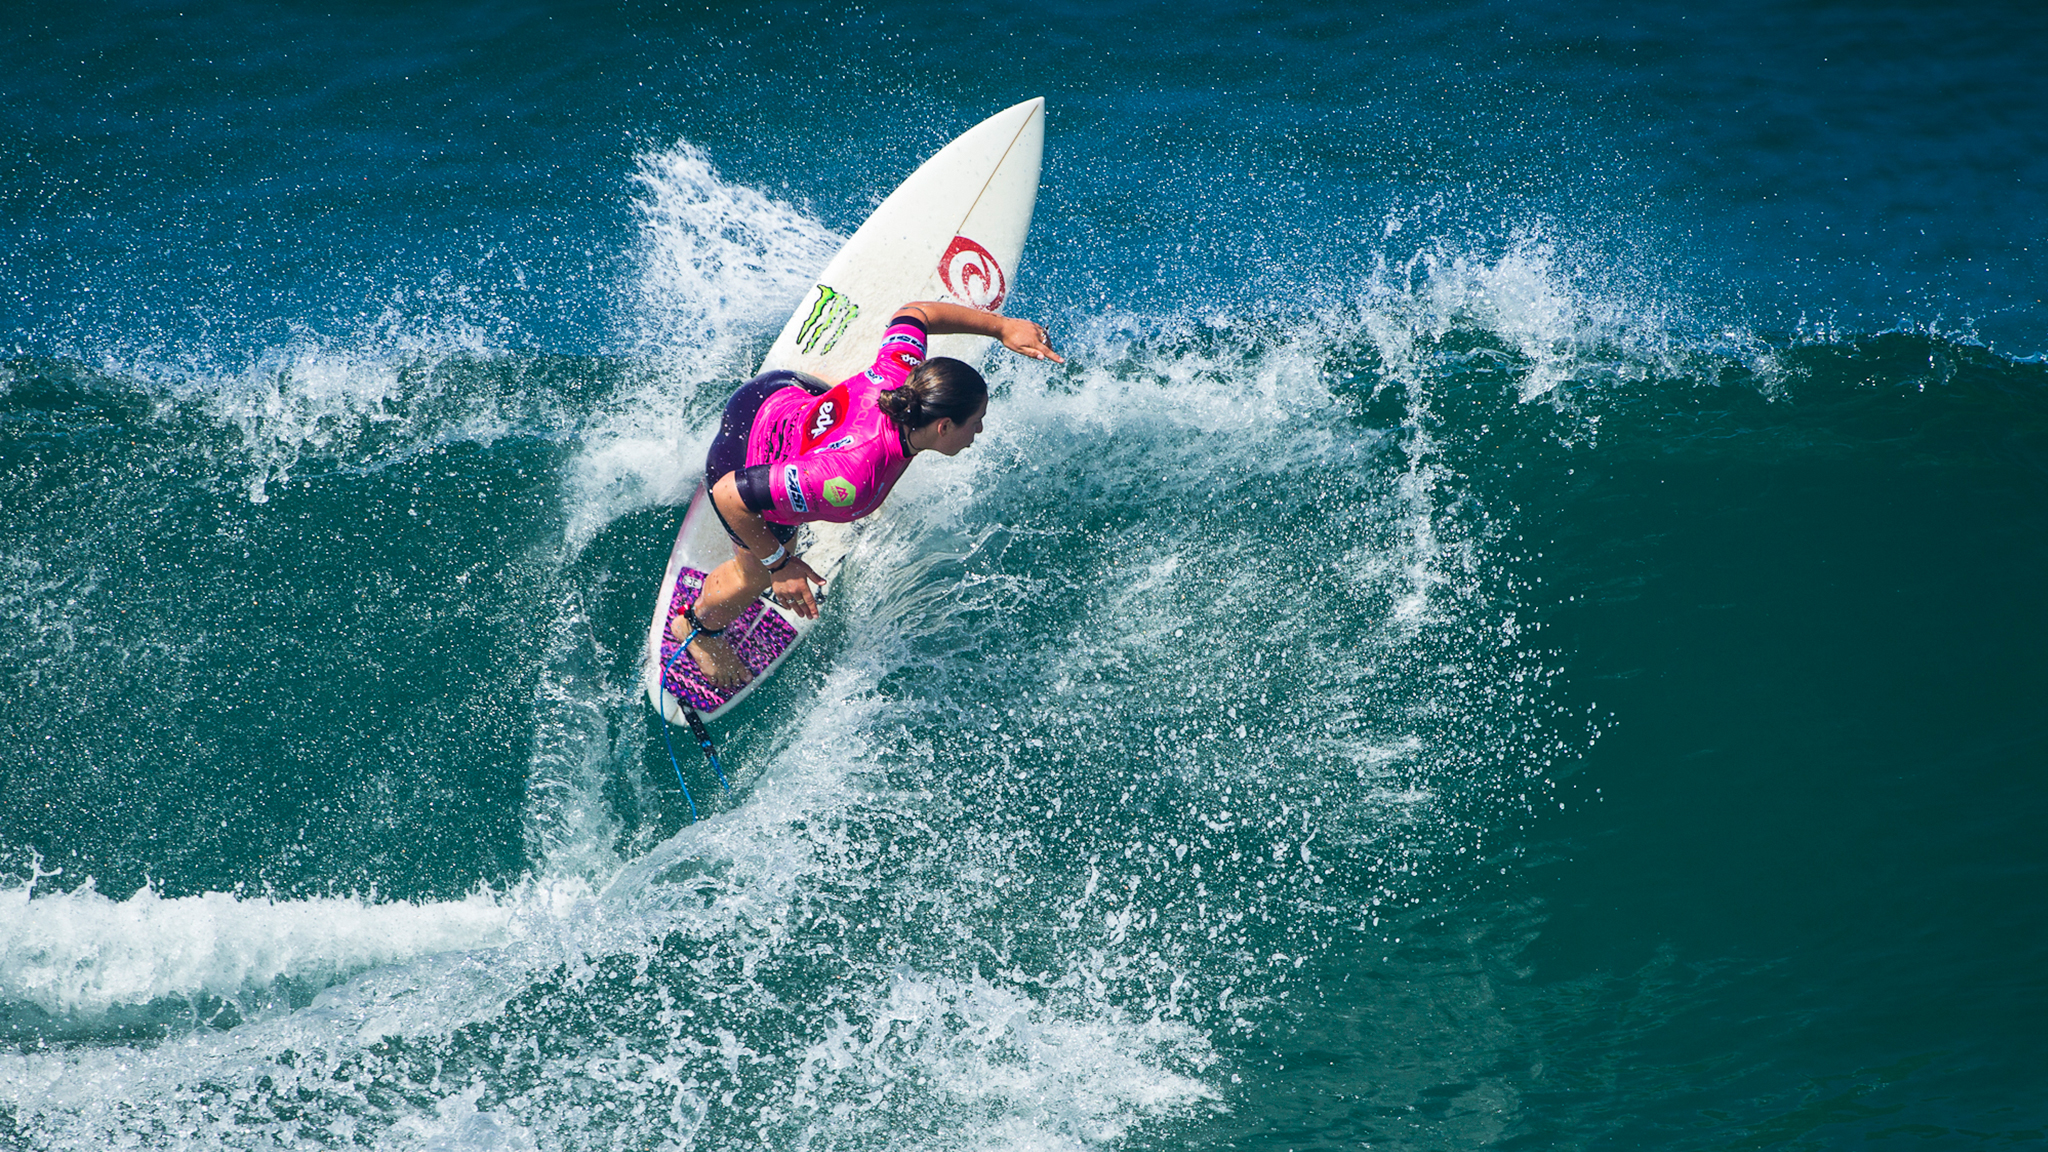 Tyler Wright held up her end of the world title race, advancing into the quarterfinals of the EDP Cascais Girls Pro in Portugal.